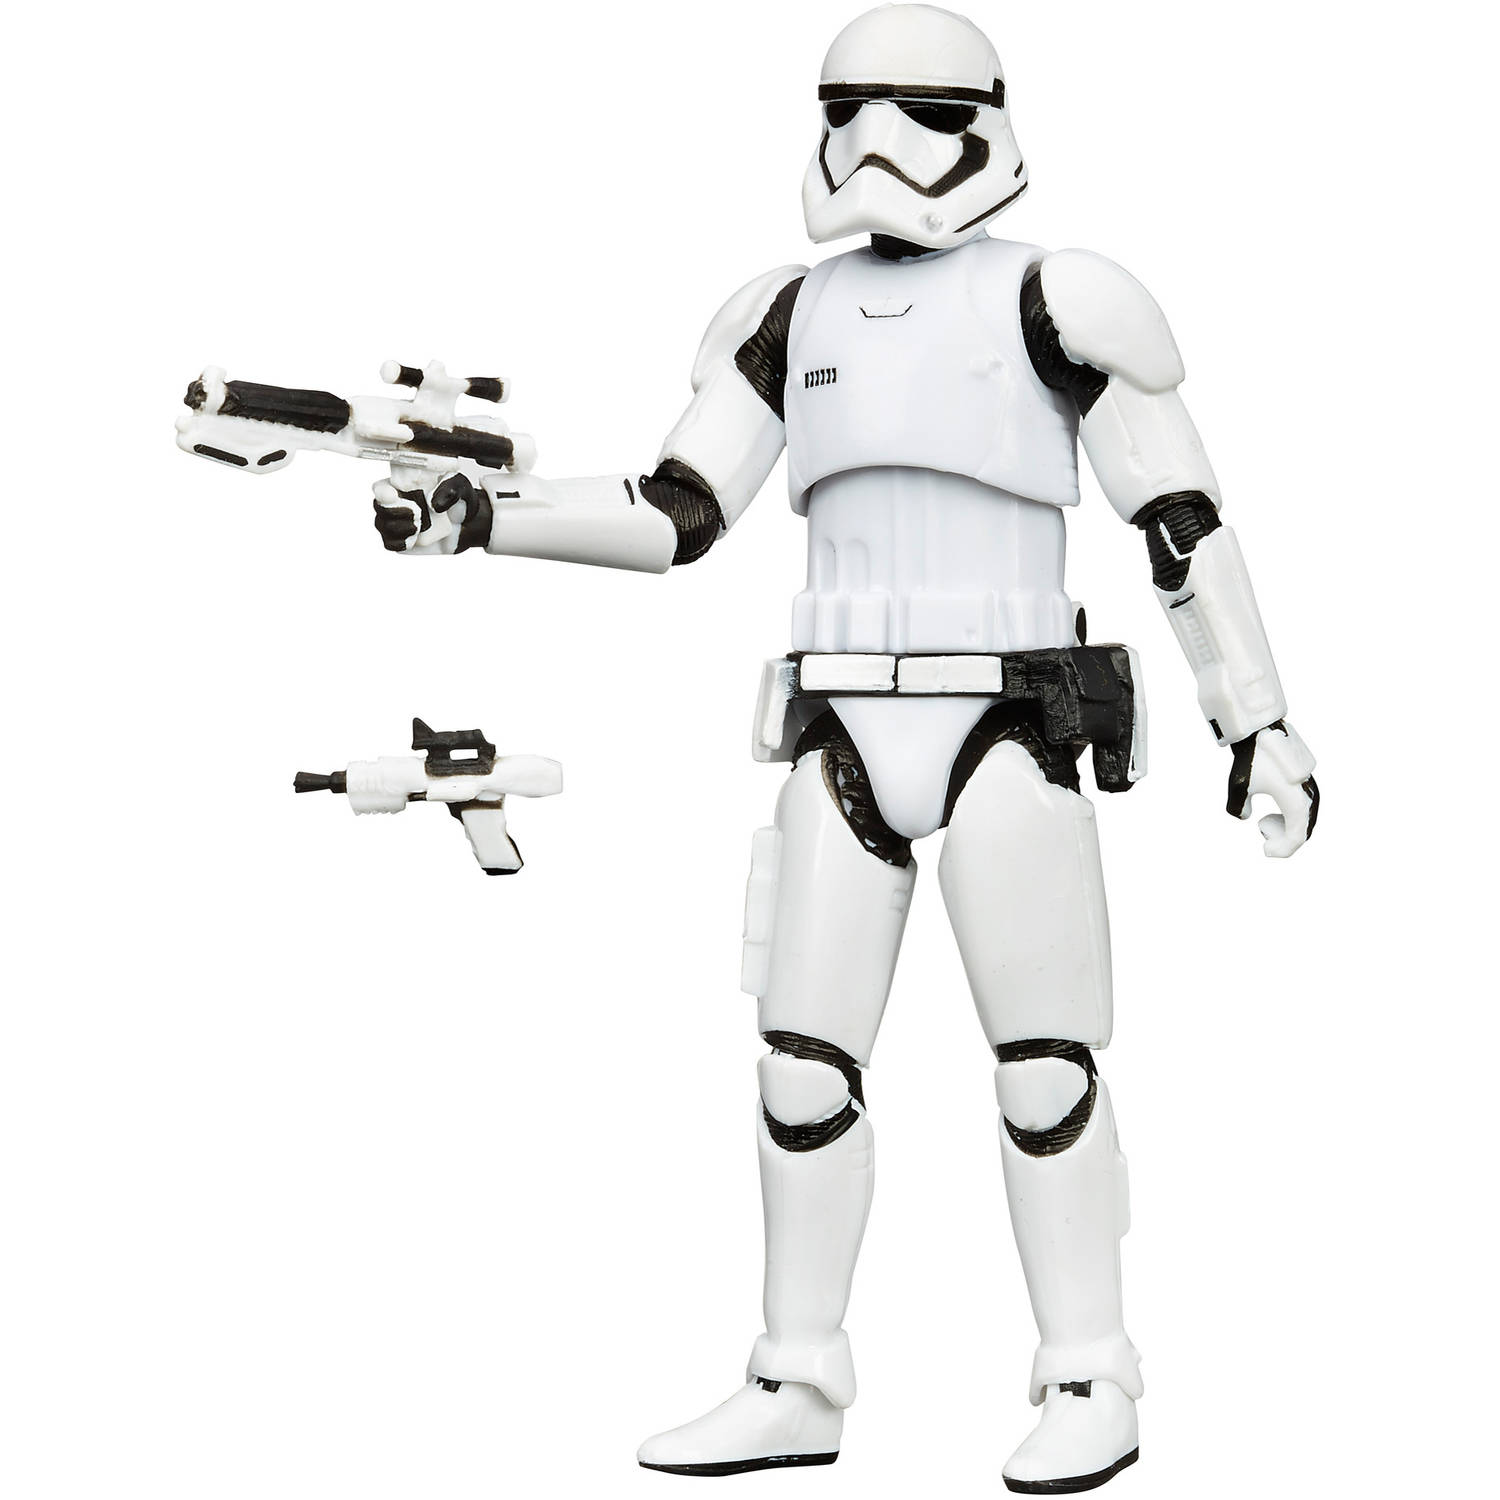 "Star Wars The Black Series 3.75"" First Order Stormtrooper"